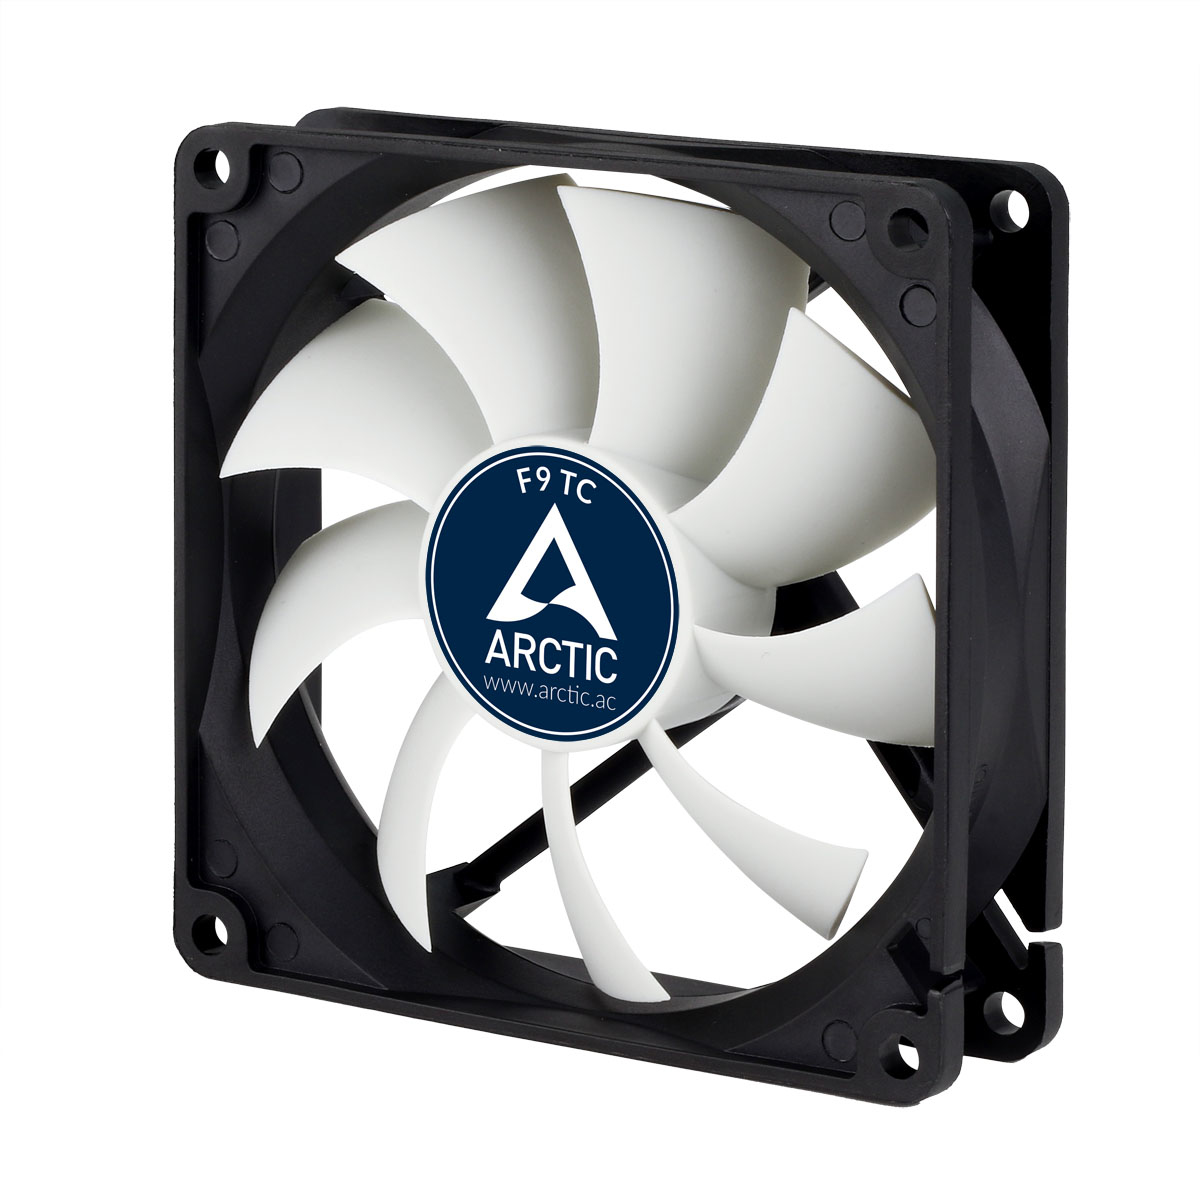 ARCTIC F9 TC - Pin Temperature-controlled fan with standard case